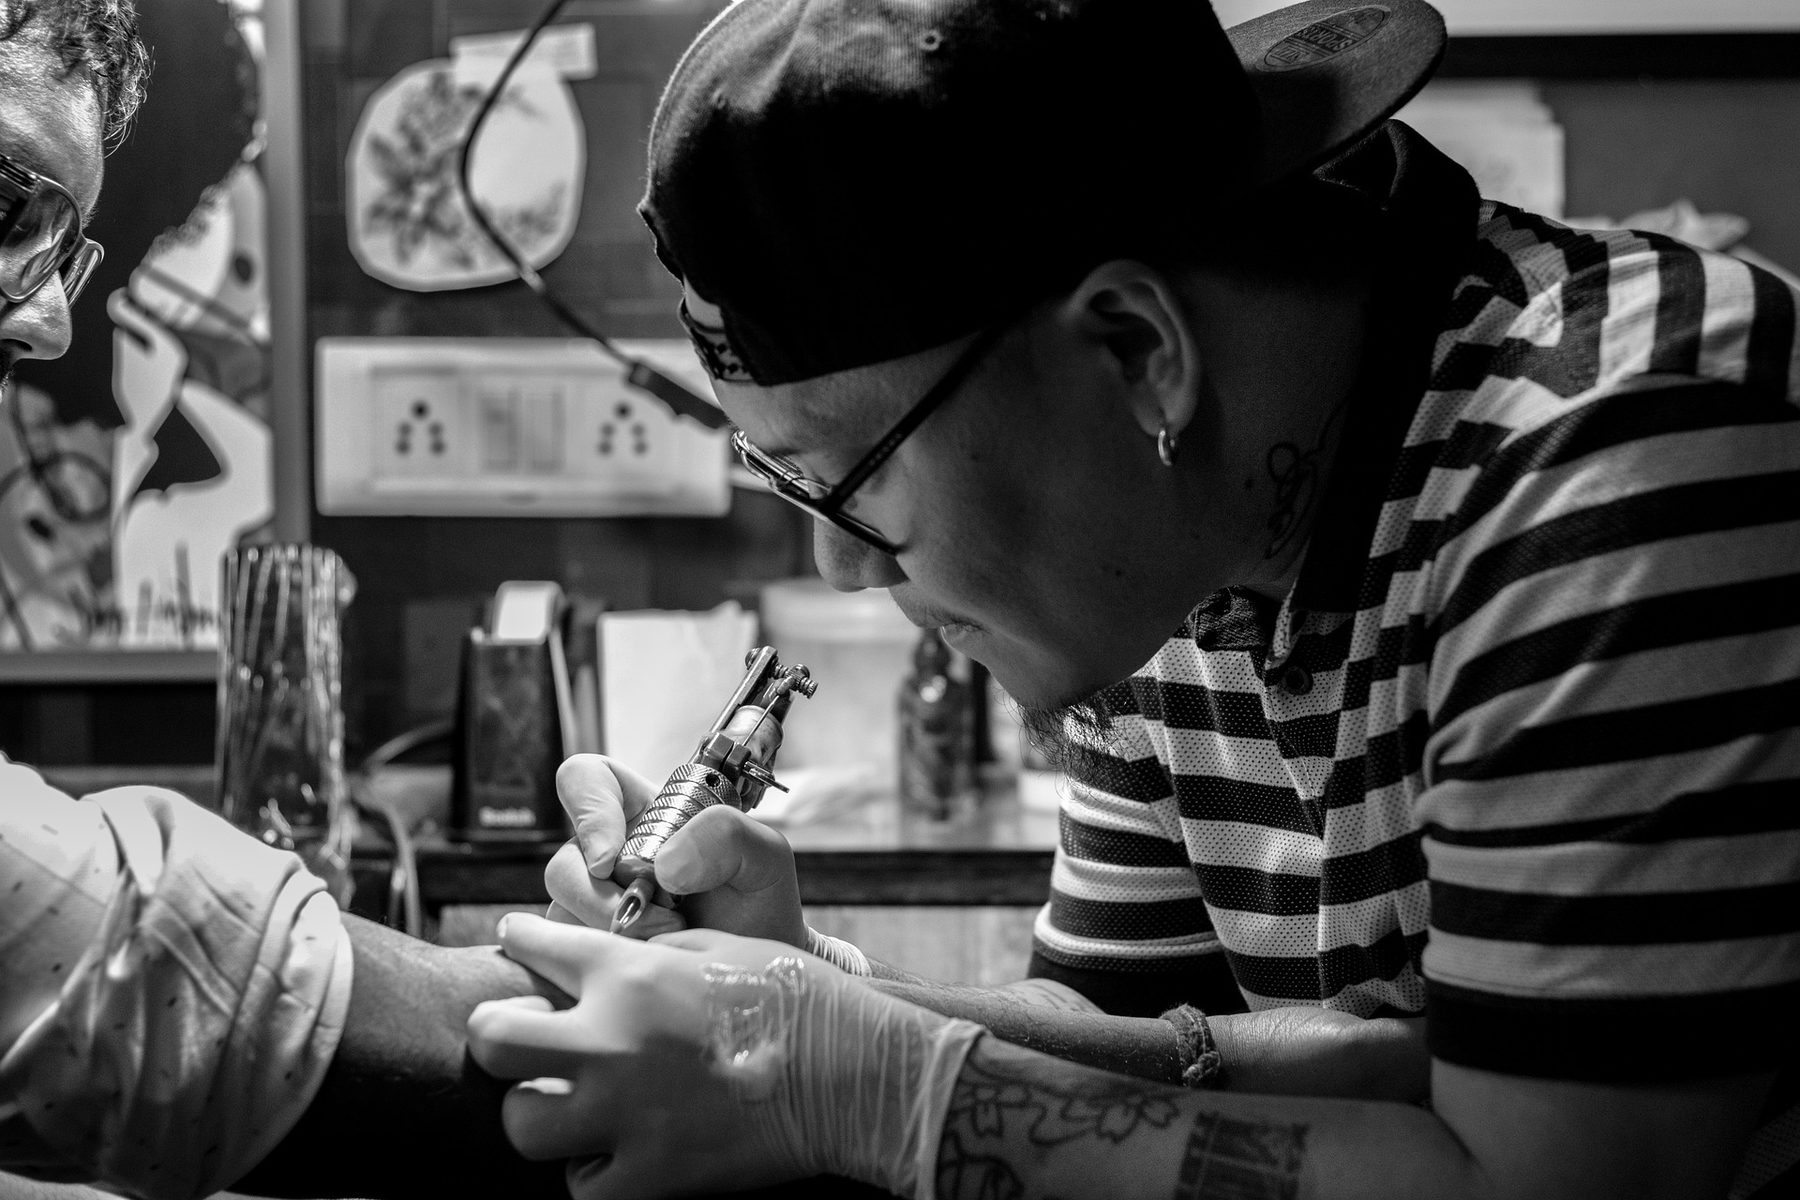 Job Role Image (Tattooist and customer, black and white)